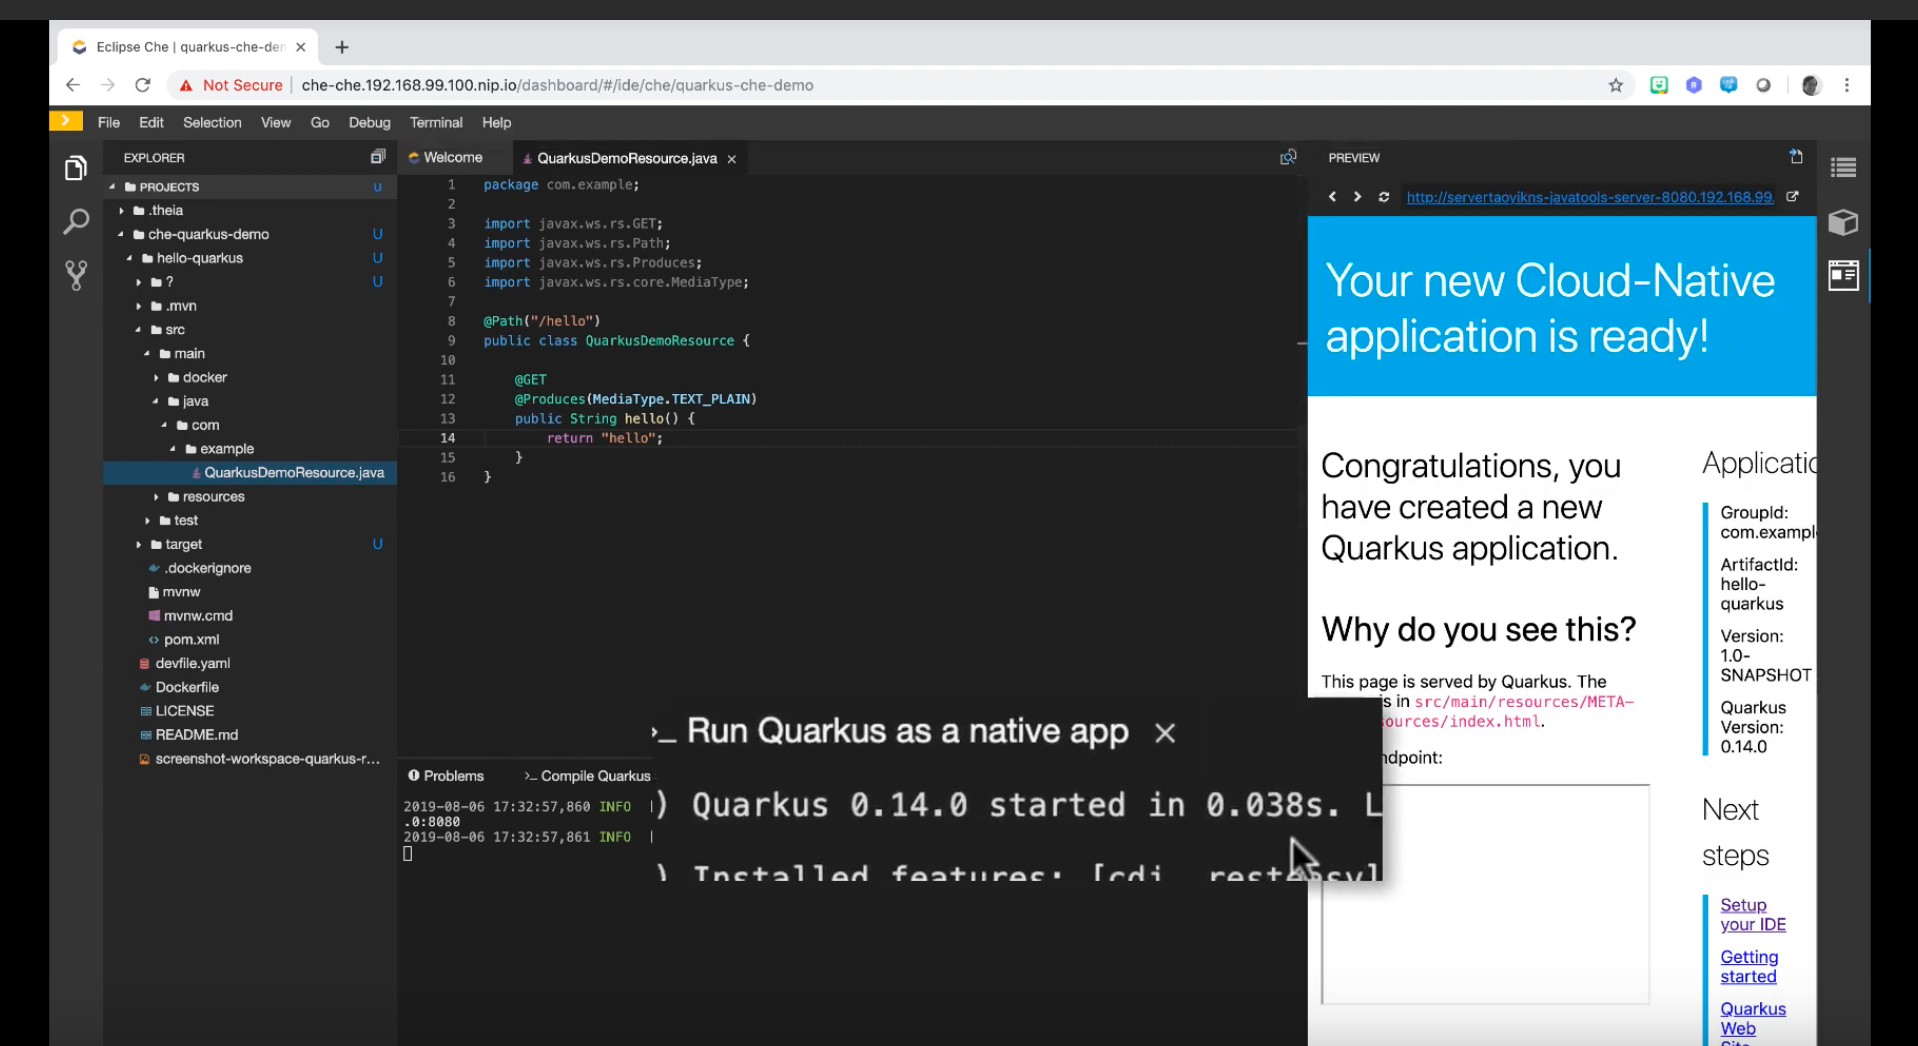 Get started with Eclipse Che 7 and Quarkus: An overview